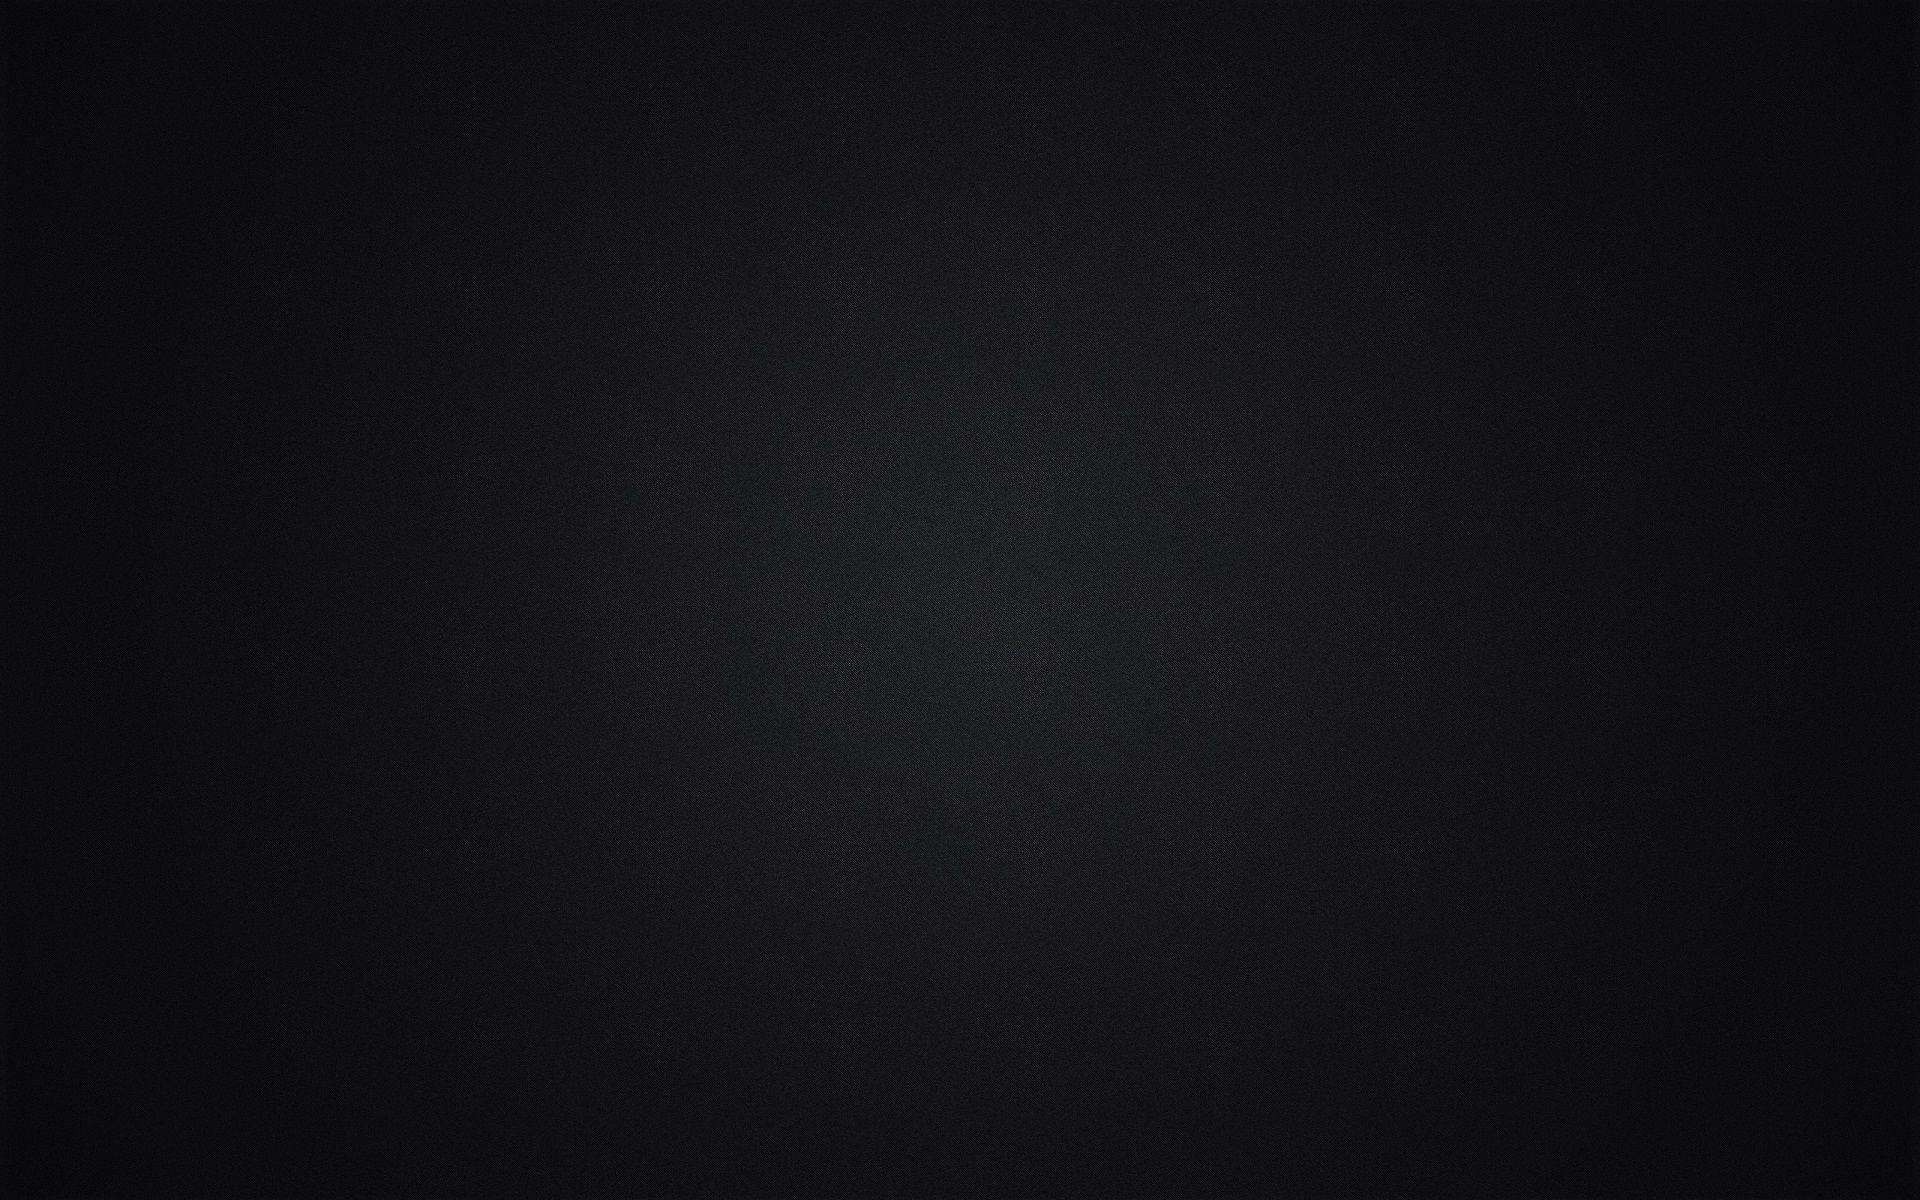 black wallpapers android apps on google play 1920a—1200